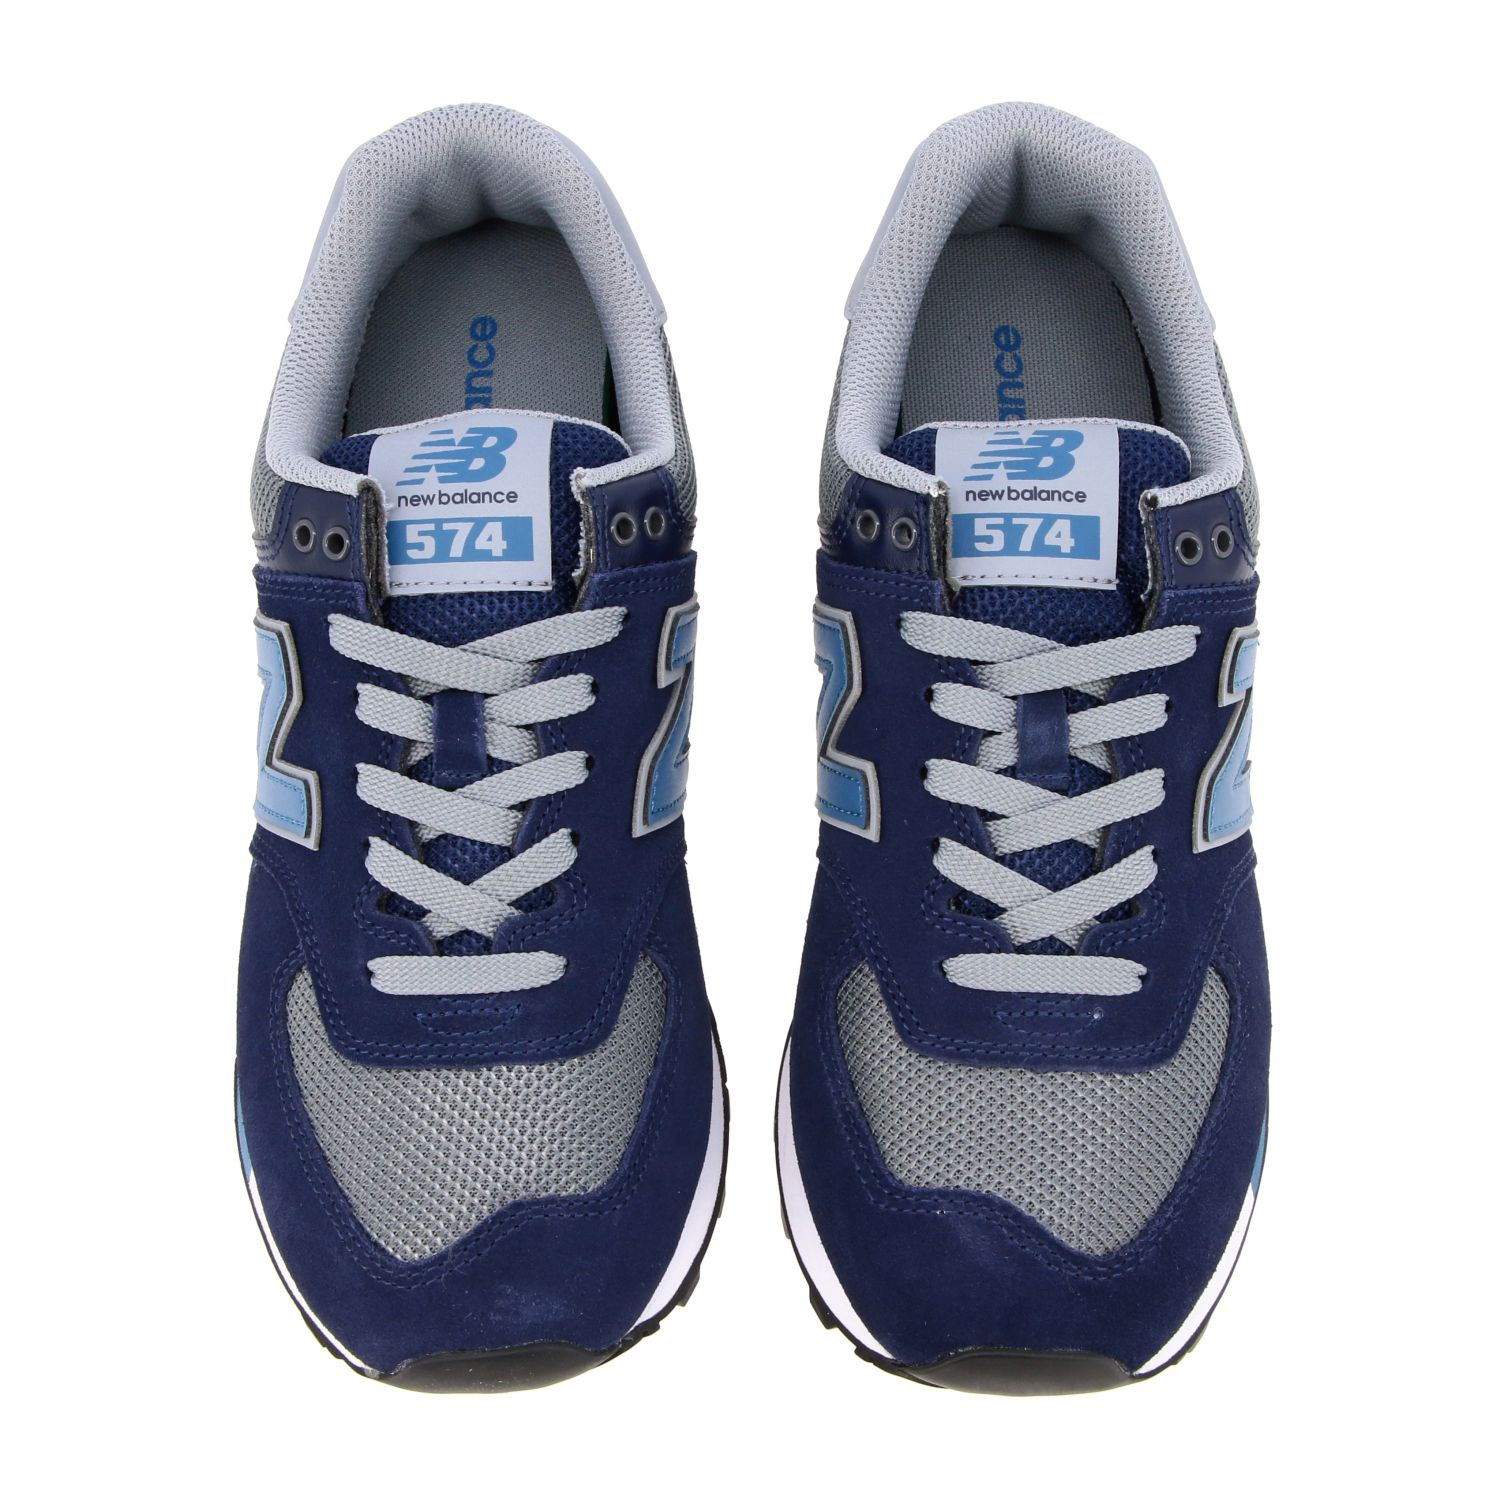 Baskets 574 New Balance en daim et filet contrastés bleu 3